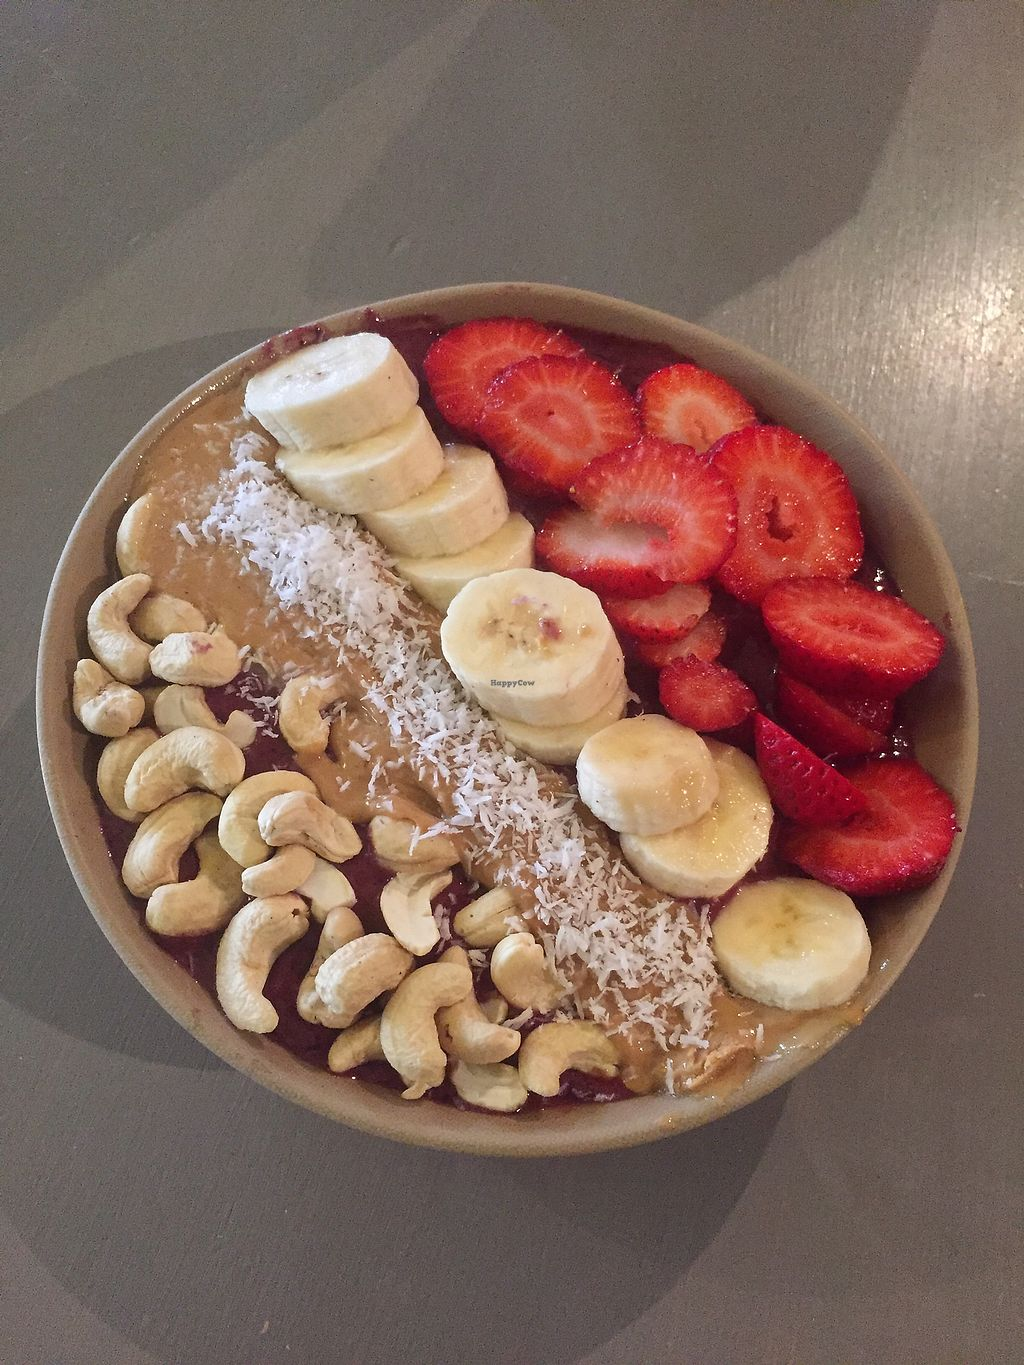 """Photo of Roots Organic Juice Cafe  by <a href=""""/members/profile/happycowgirl"""">happycowgirl</a> <br/>Smoothie Bowl : ) <br/> September 19, 2017  - <a href='/contact/abuse/image/33022/305953'>Report</a>"""